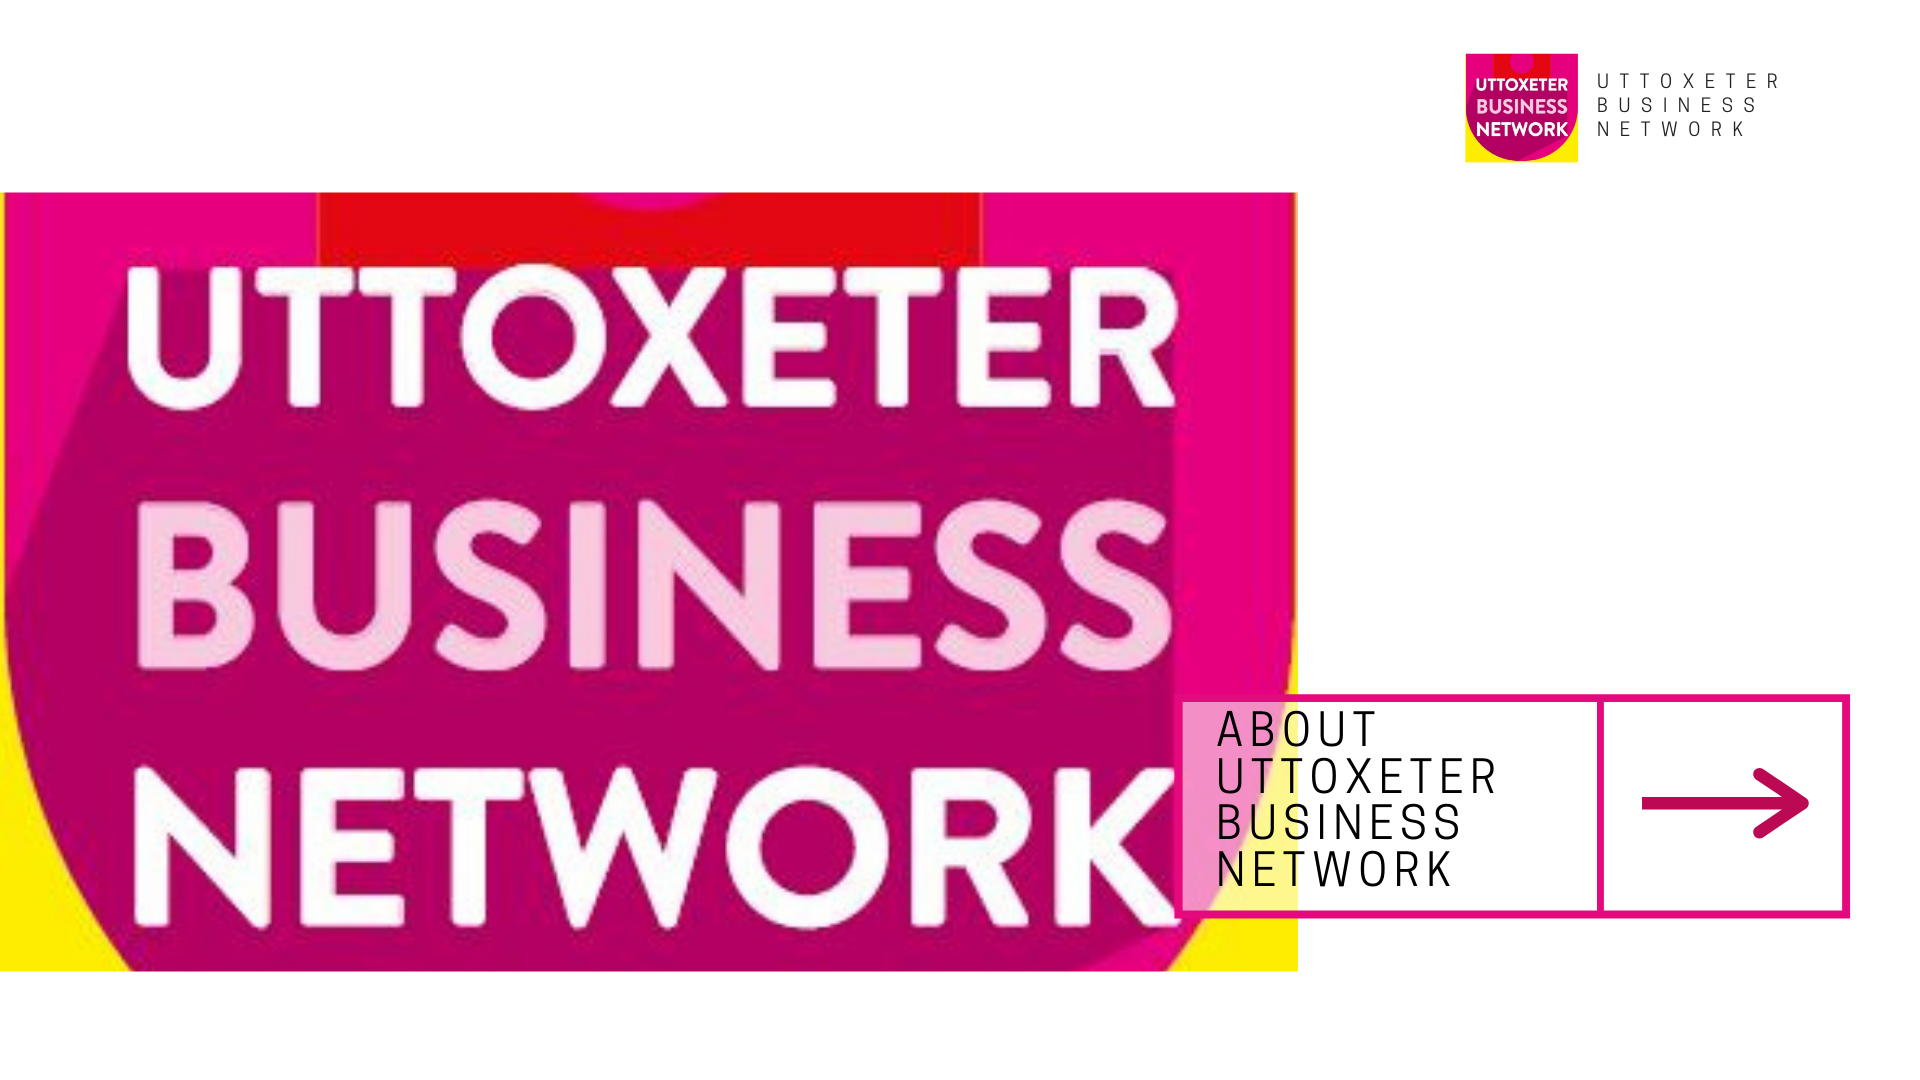 Uttoxeter Business Network information